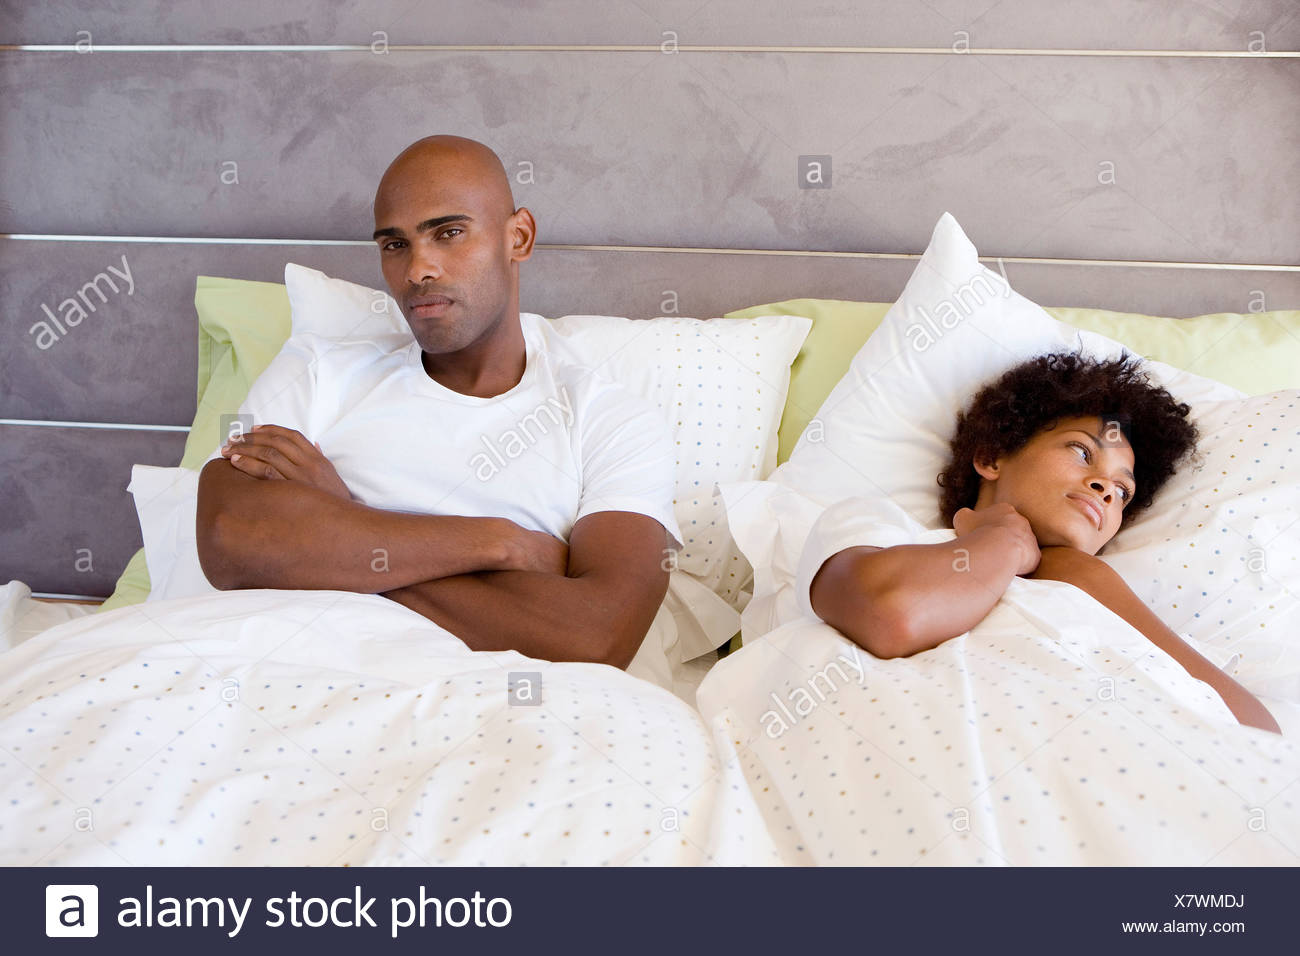 Young couple in bed, man sitting up with arms crossed, portrait - Stock Image